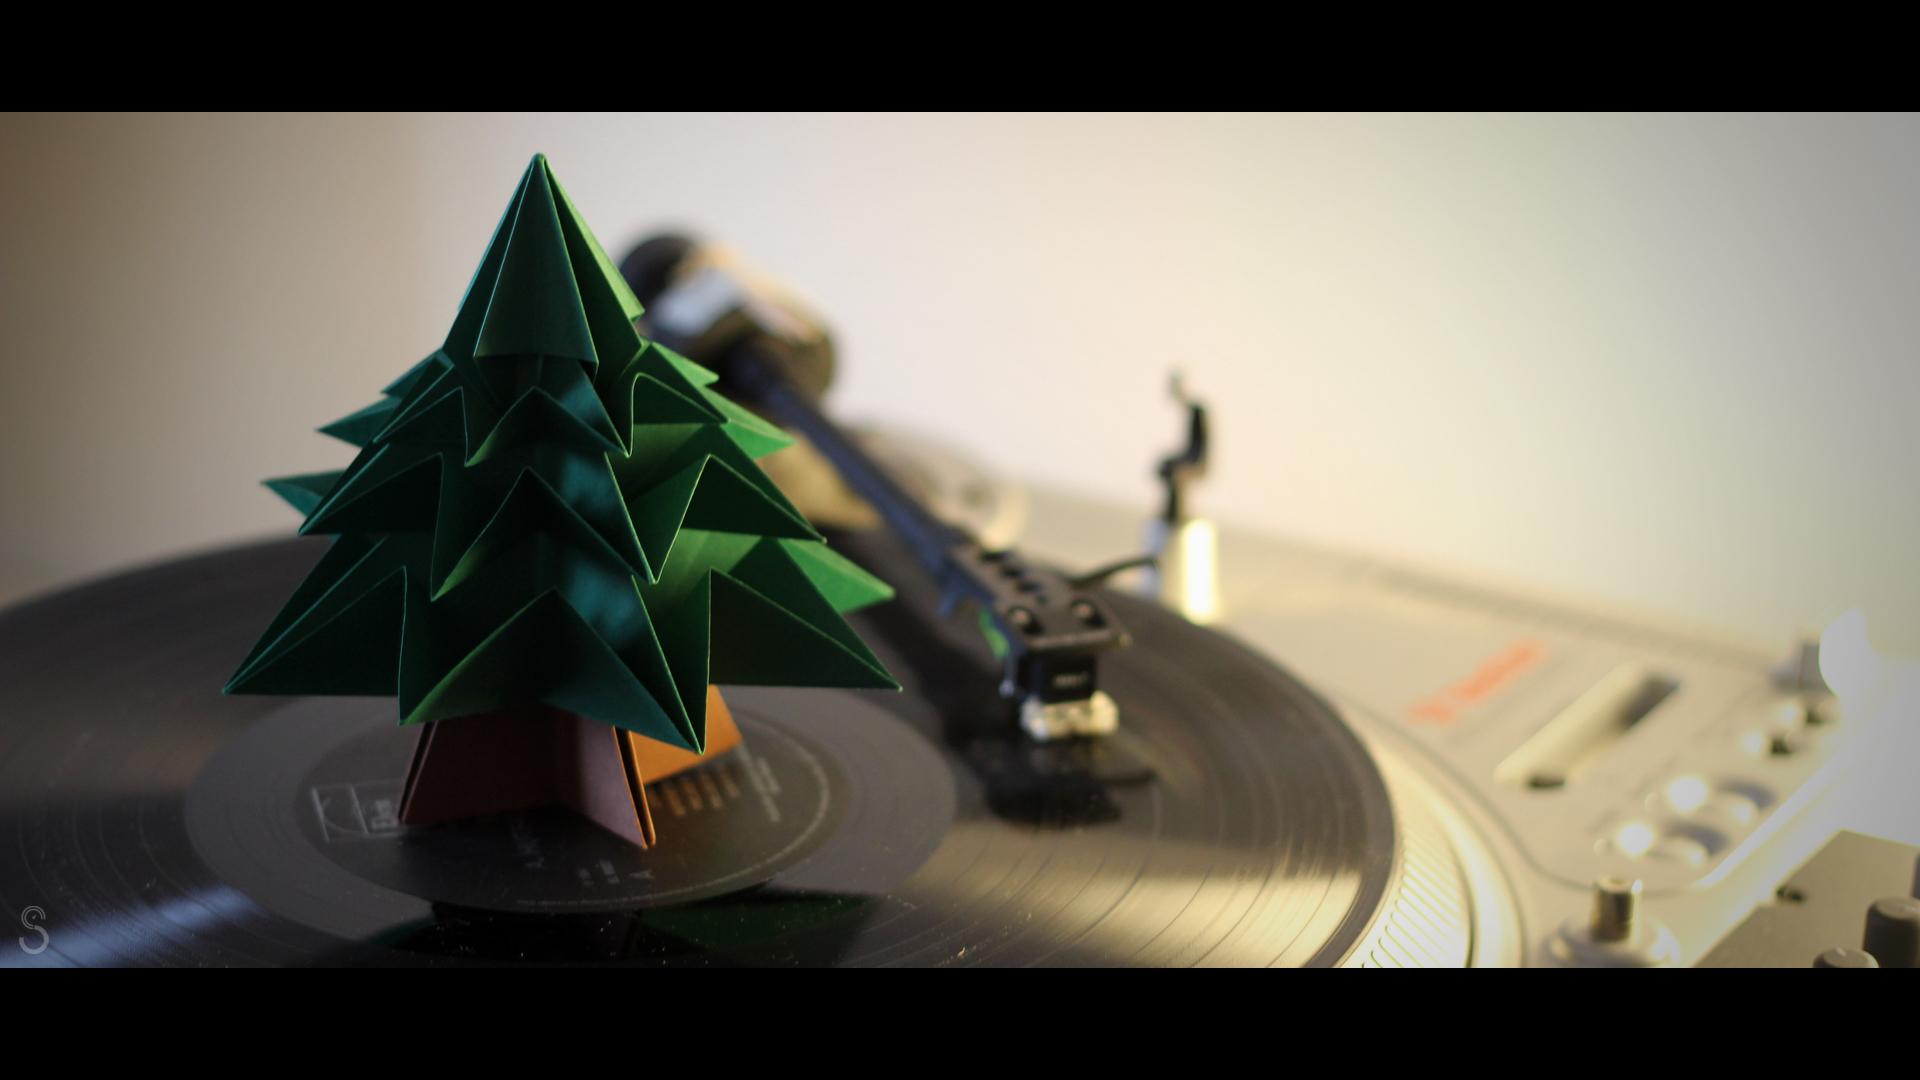 965125-christmas-dj-origami-papercraft-shure-three-turntable-vestax-vinyle-winter